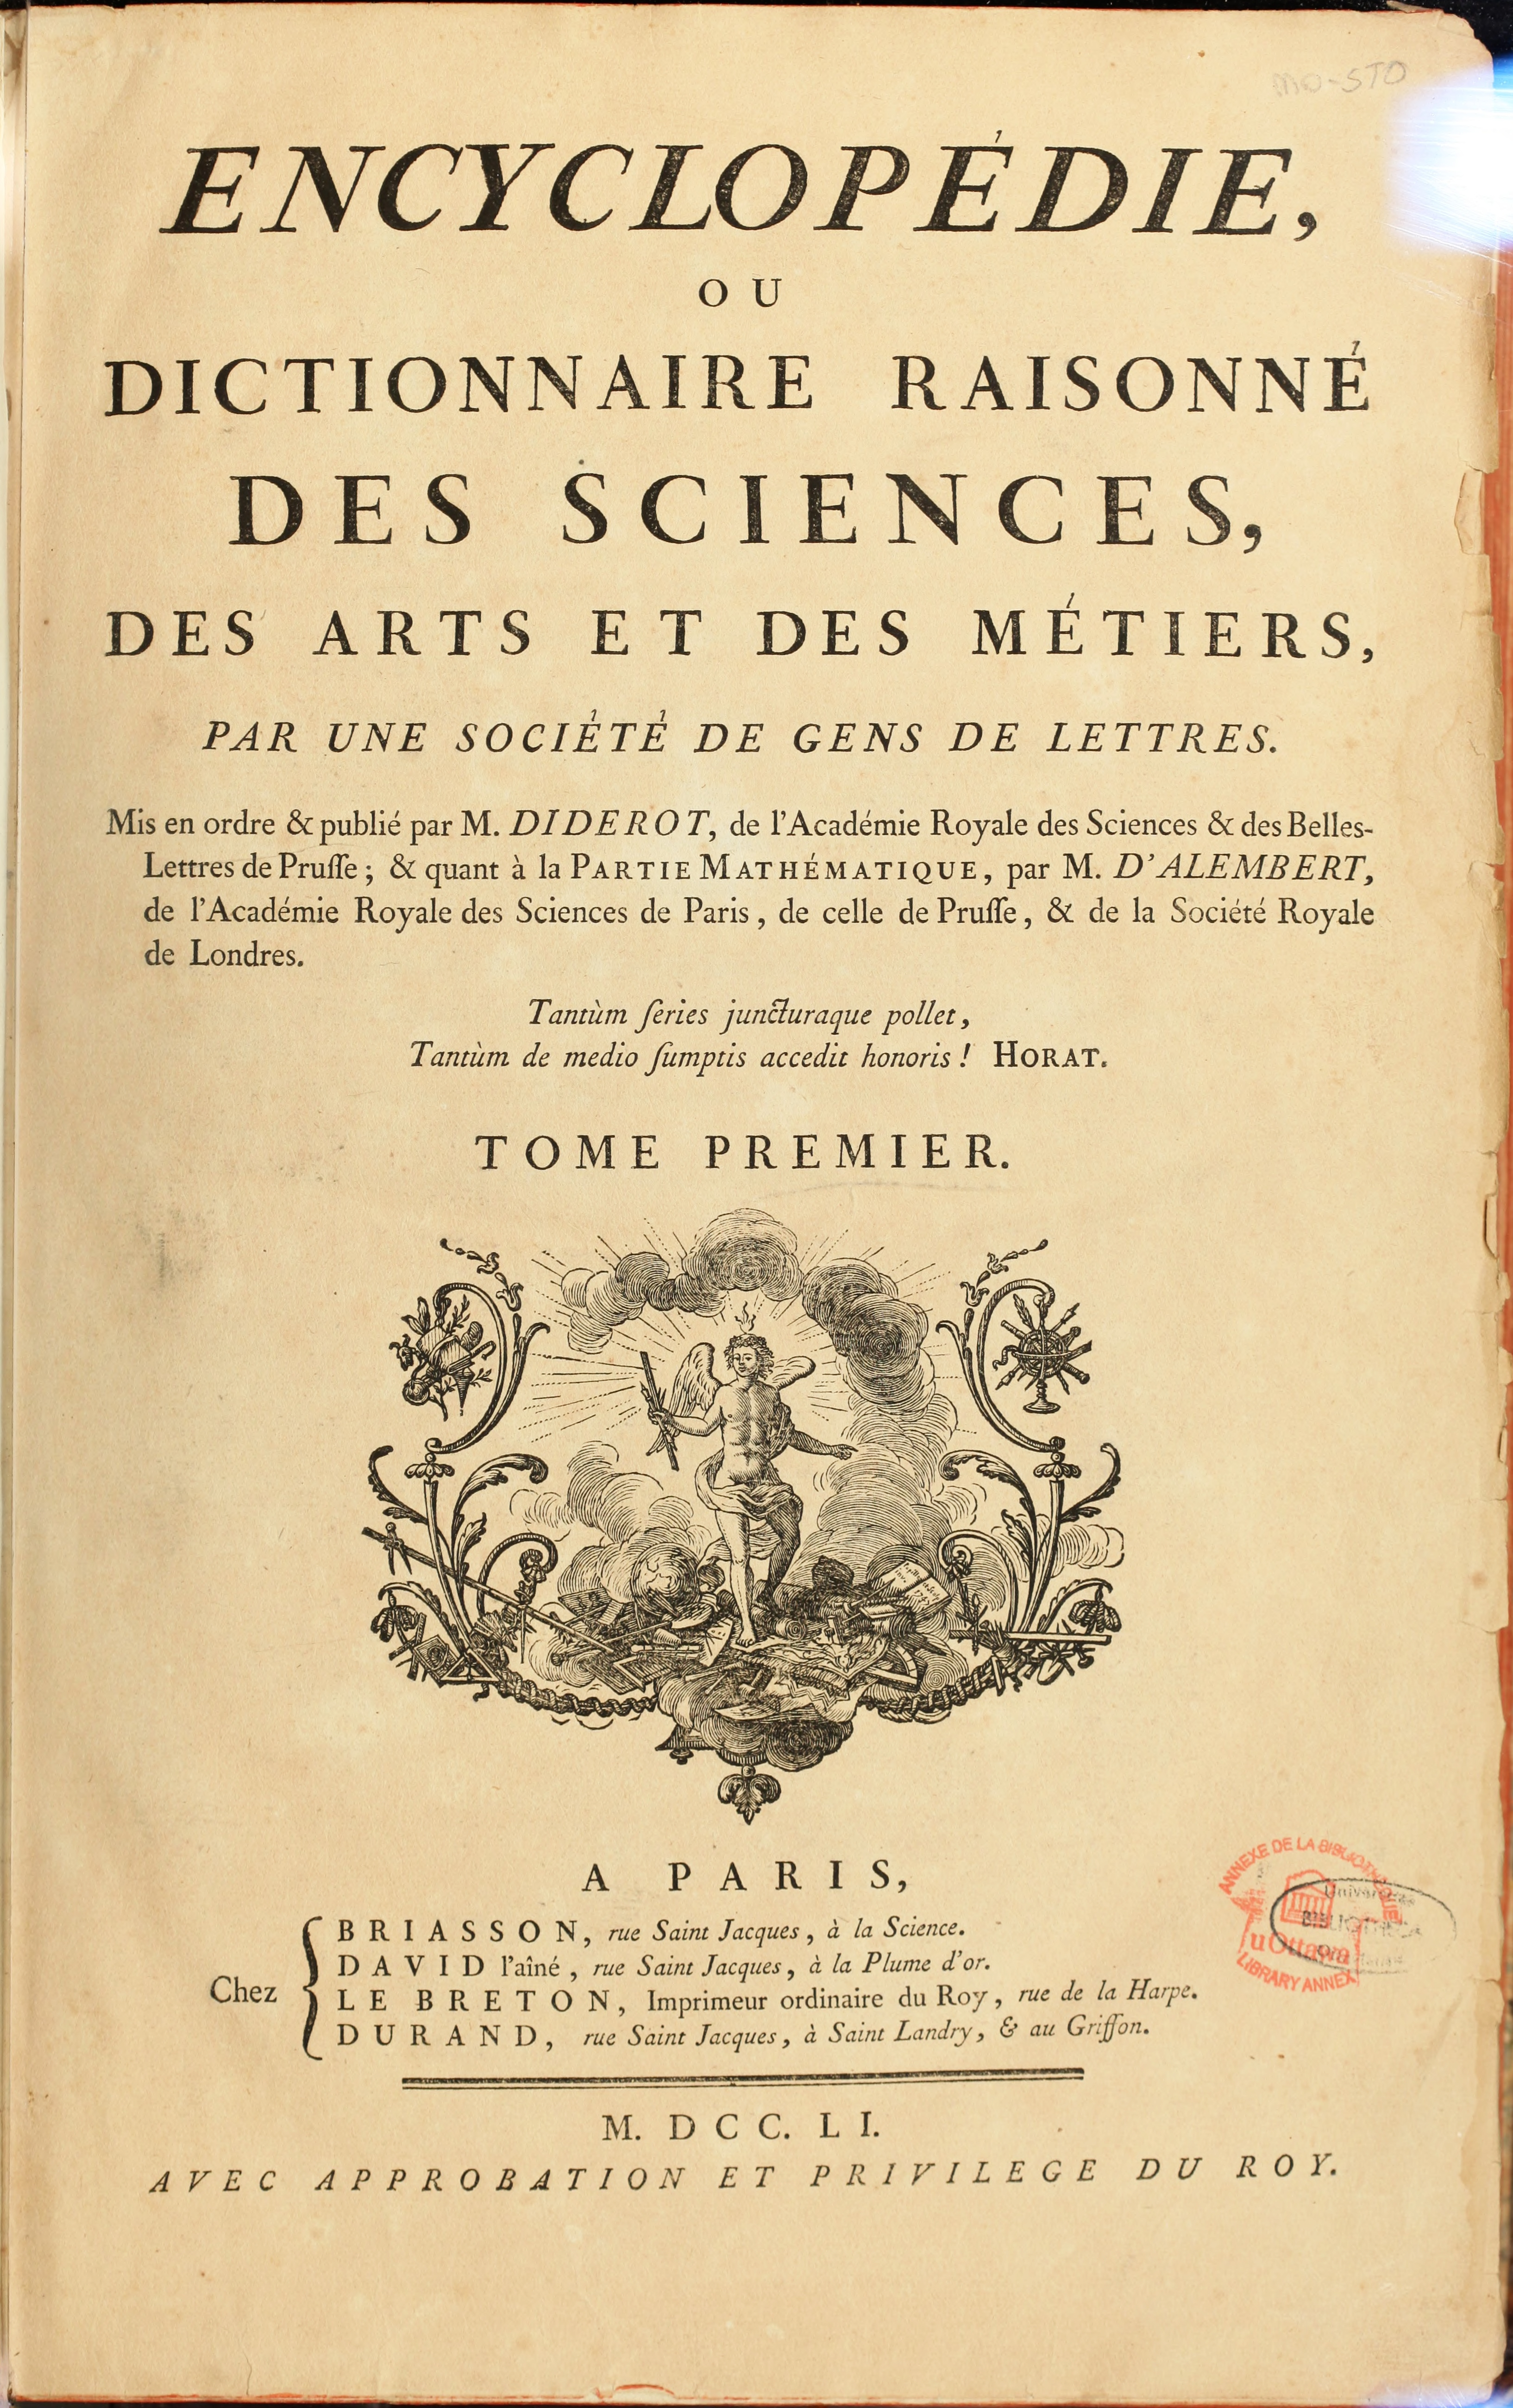 The cover sheet the French Encyclopedia of Diderot and d'Alembert.